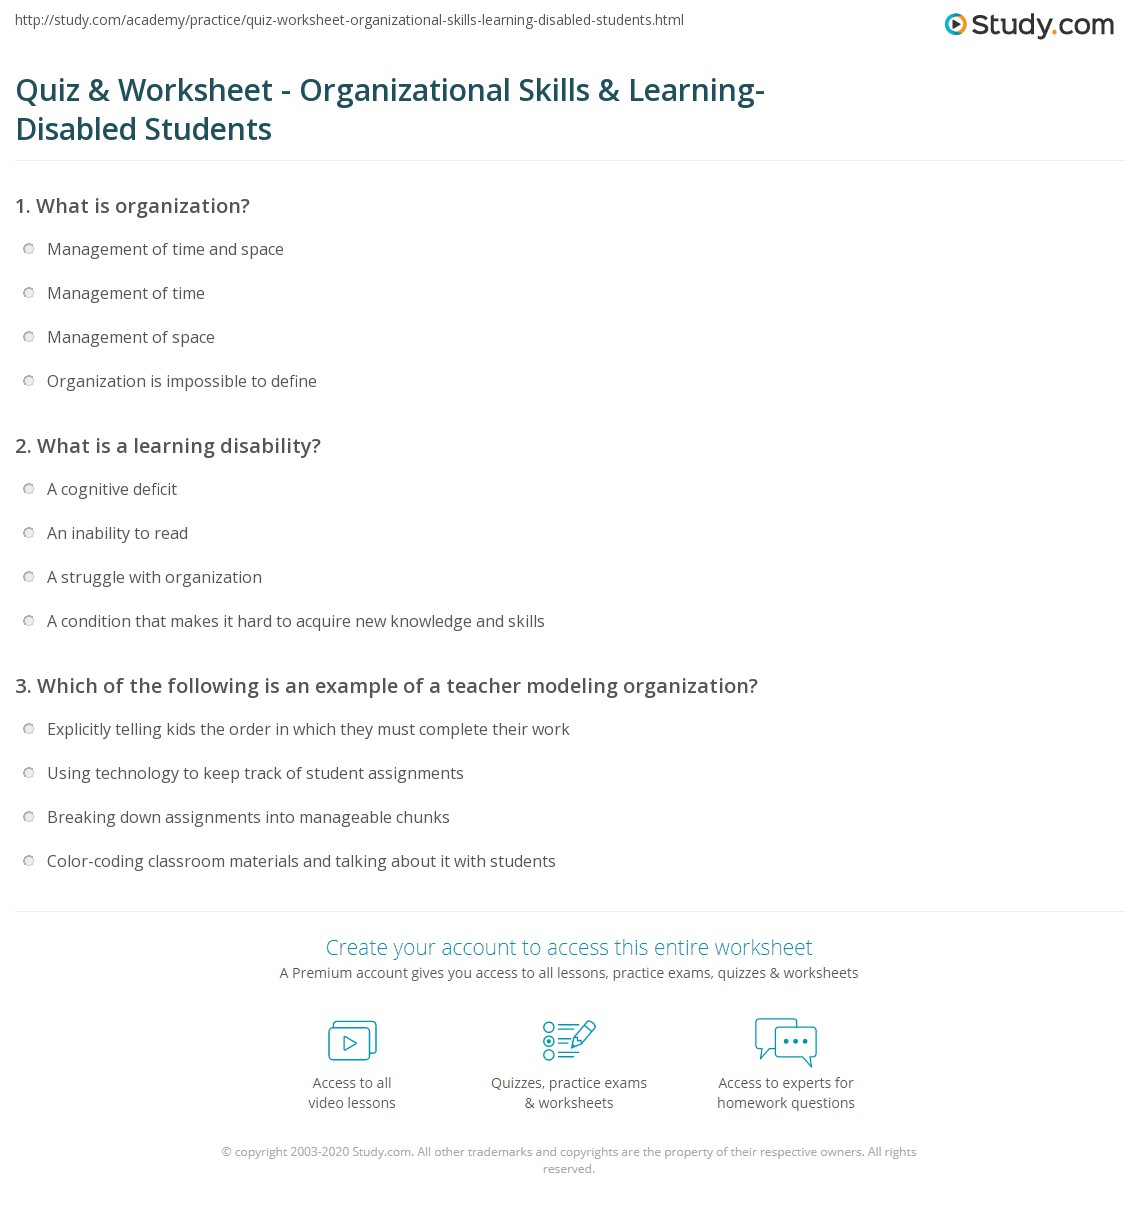 quiz worksheet organizational skills learning disabled print teaching organizational skills to students learning disabilities worksheet